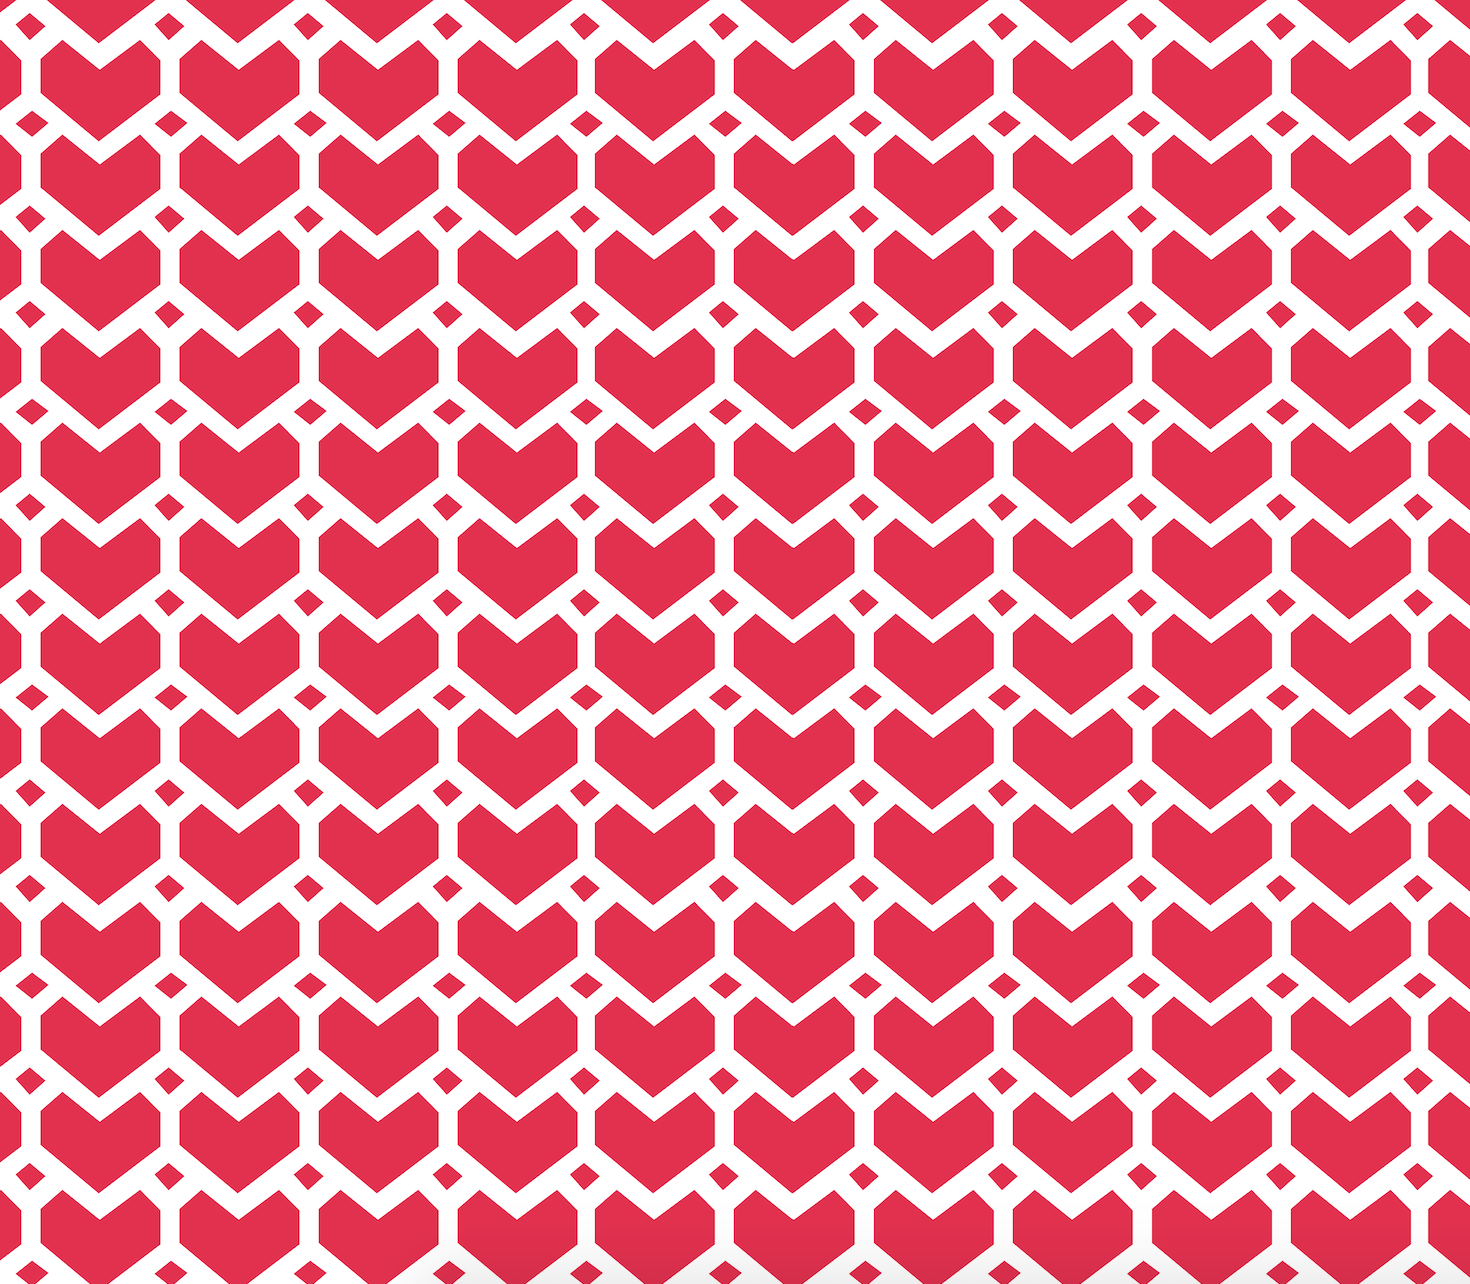 Heart shaped pattern with white hearts on red background - Eva B.